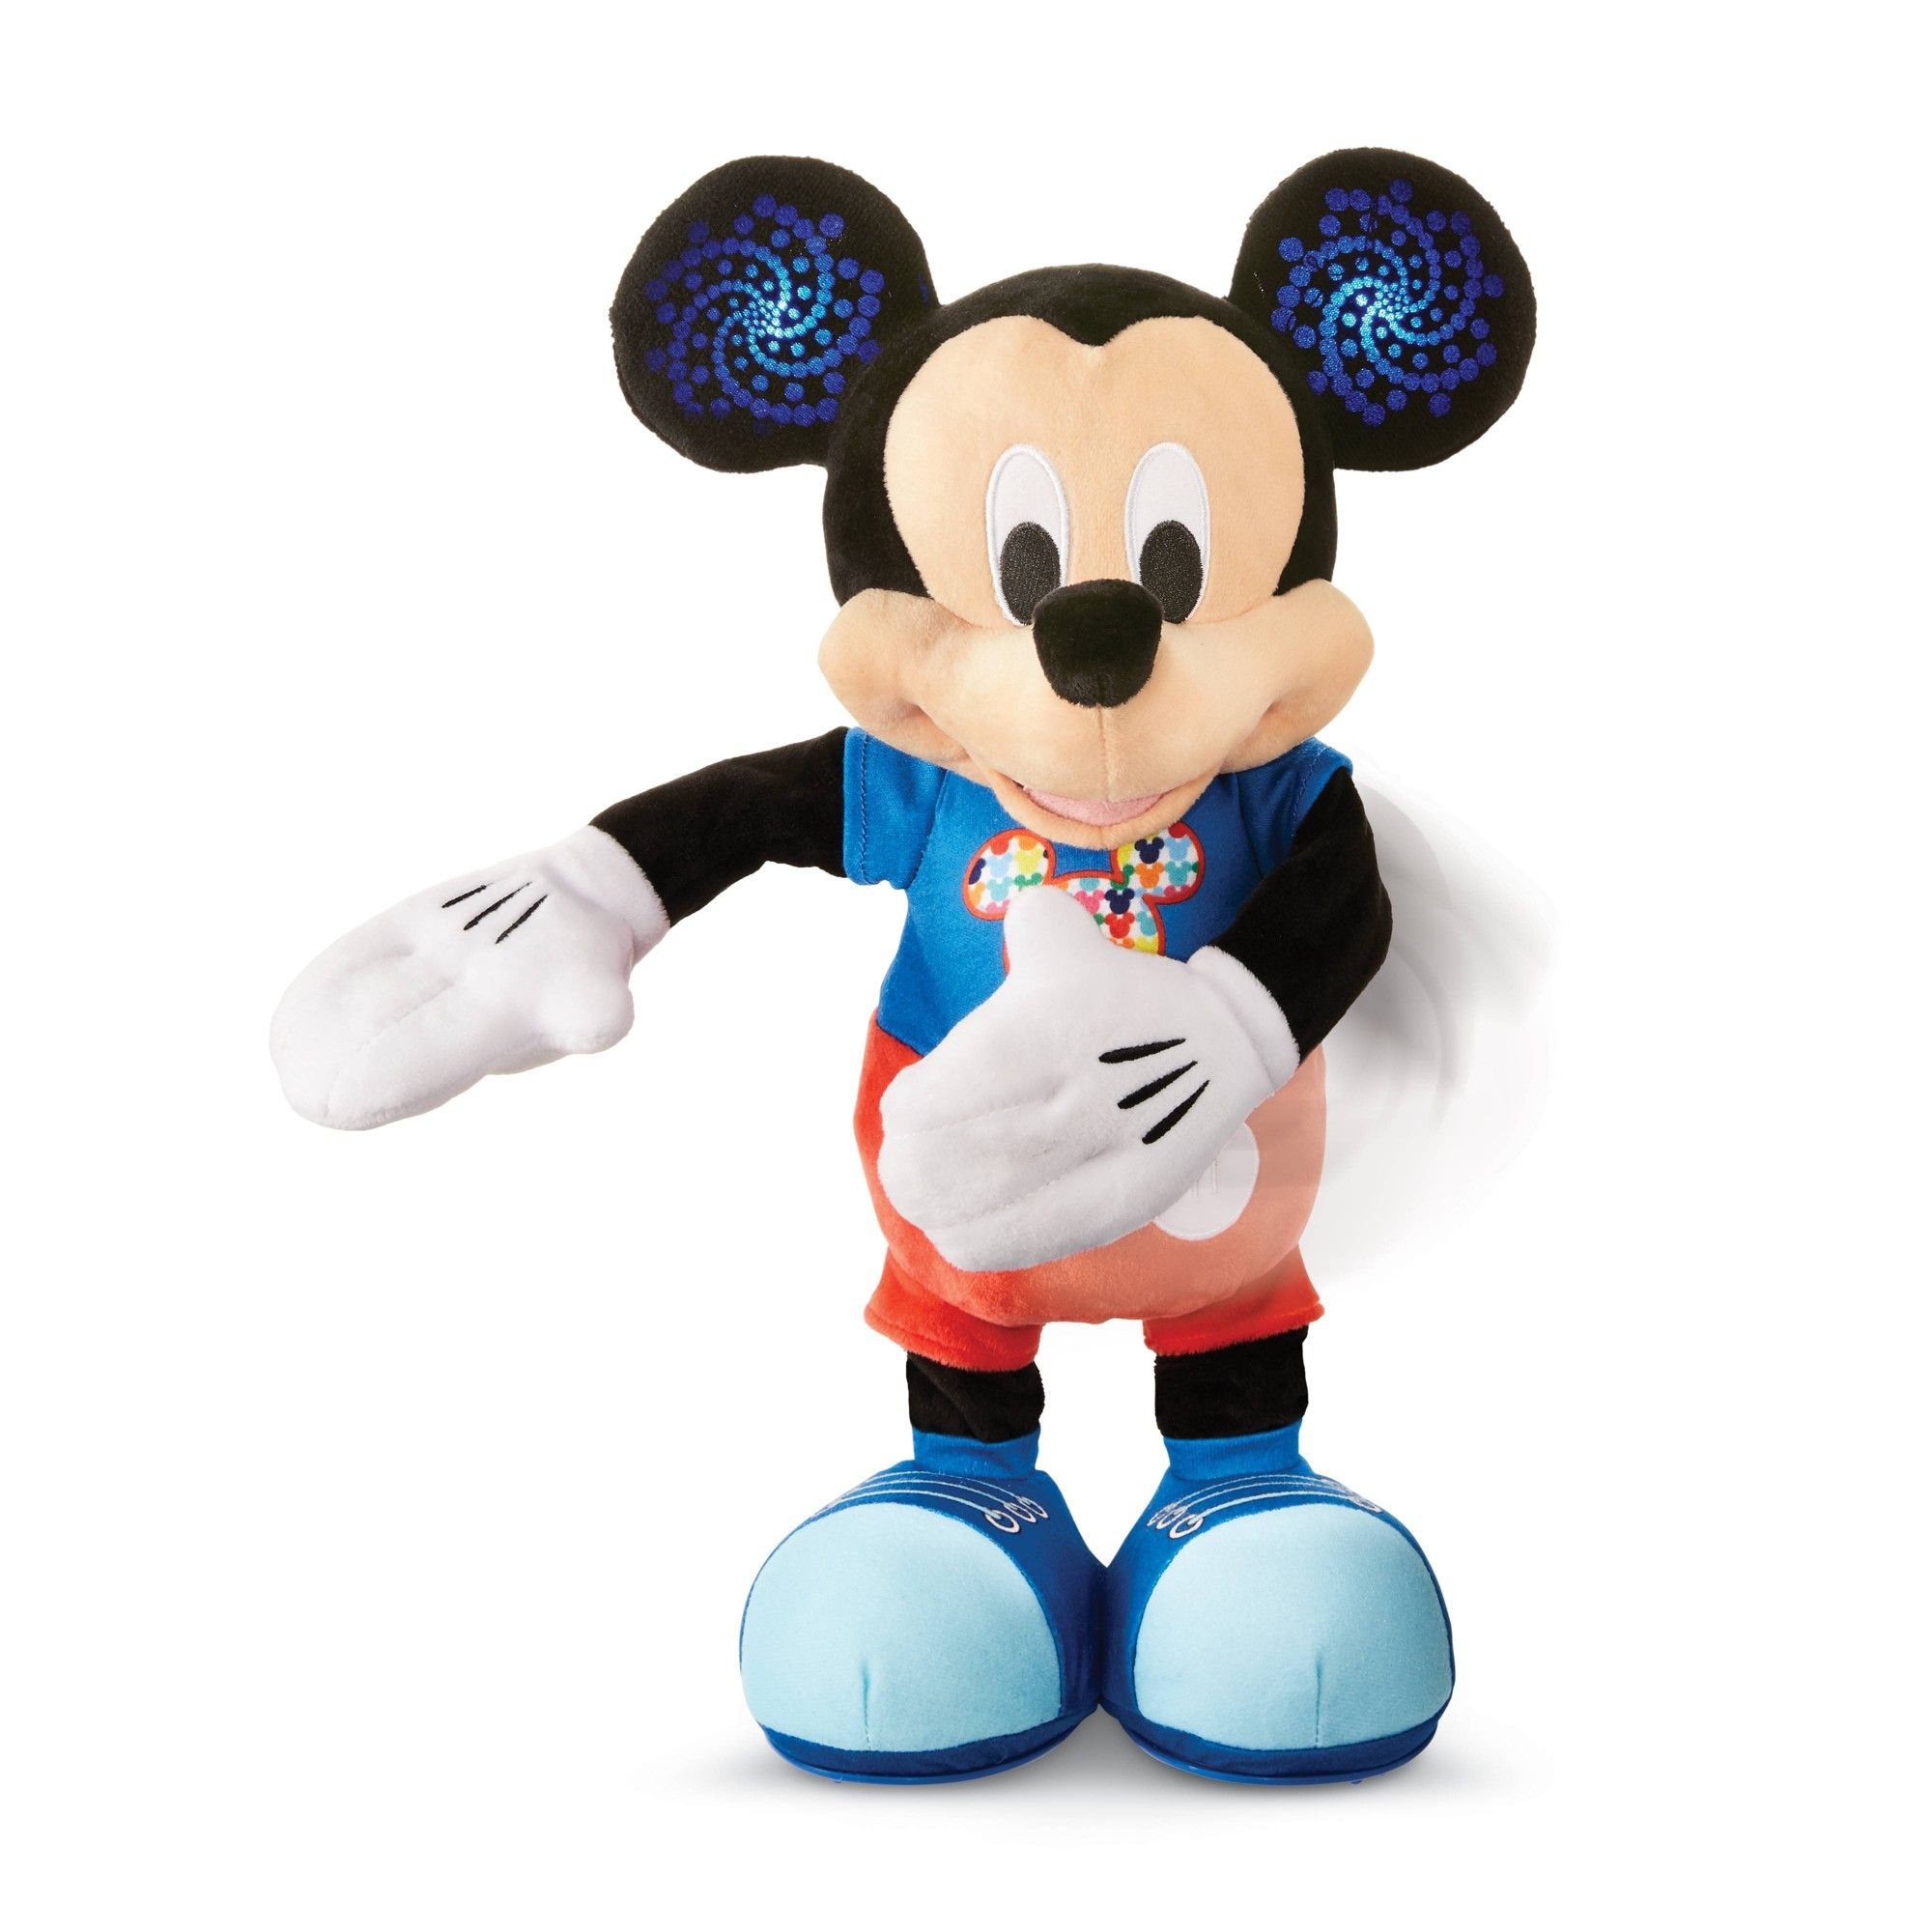 Mickey Mouse Hot Dog Dance Break Plush Mickey Mouse Mickey